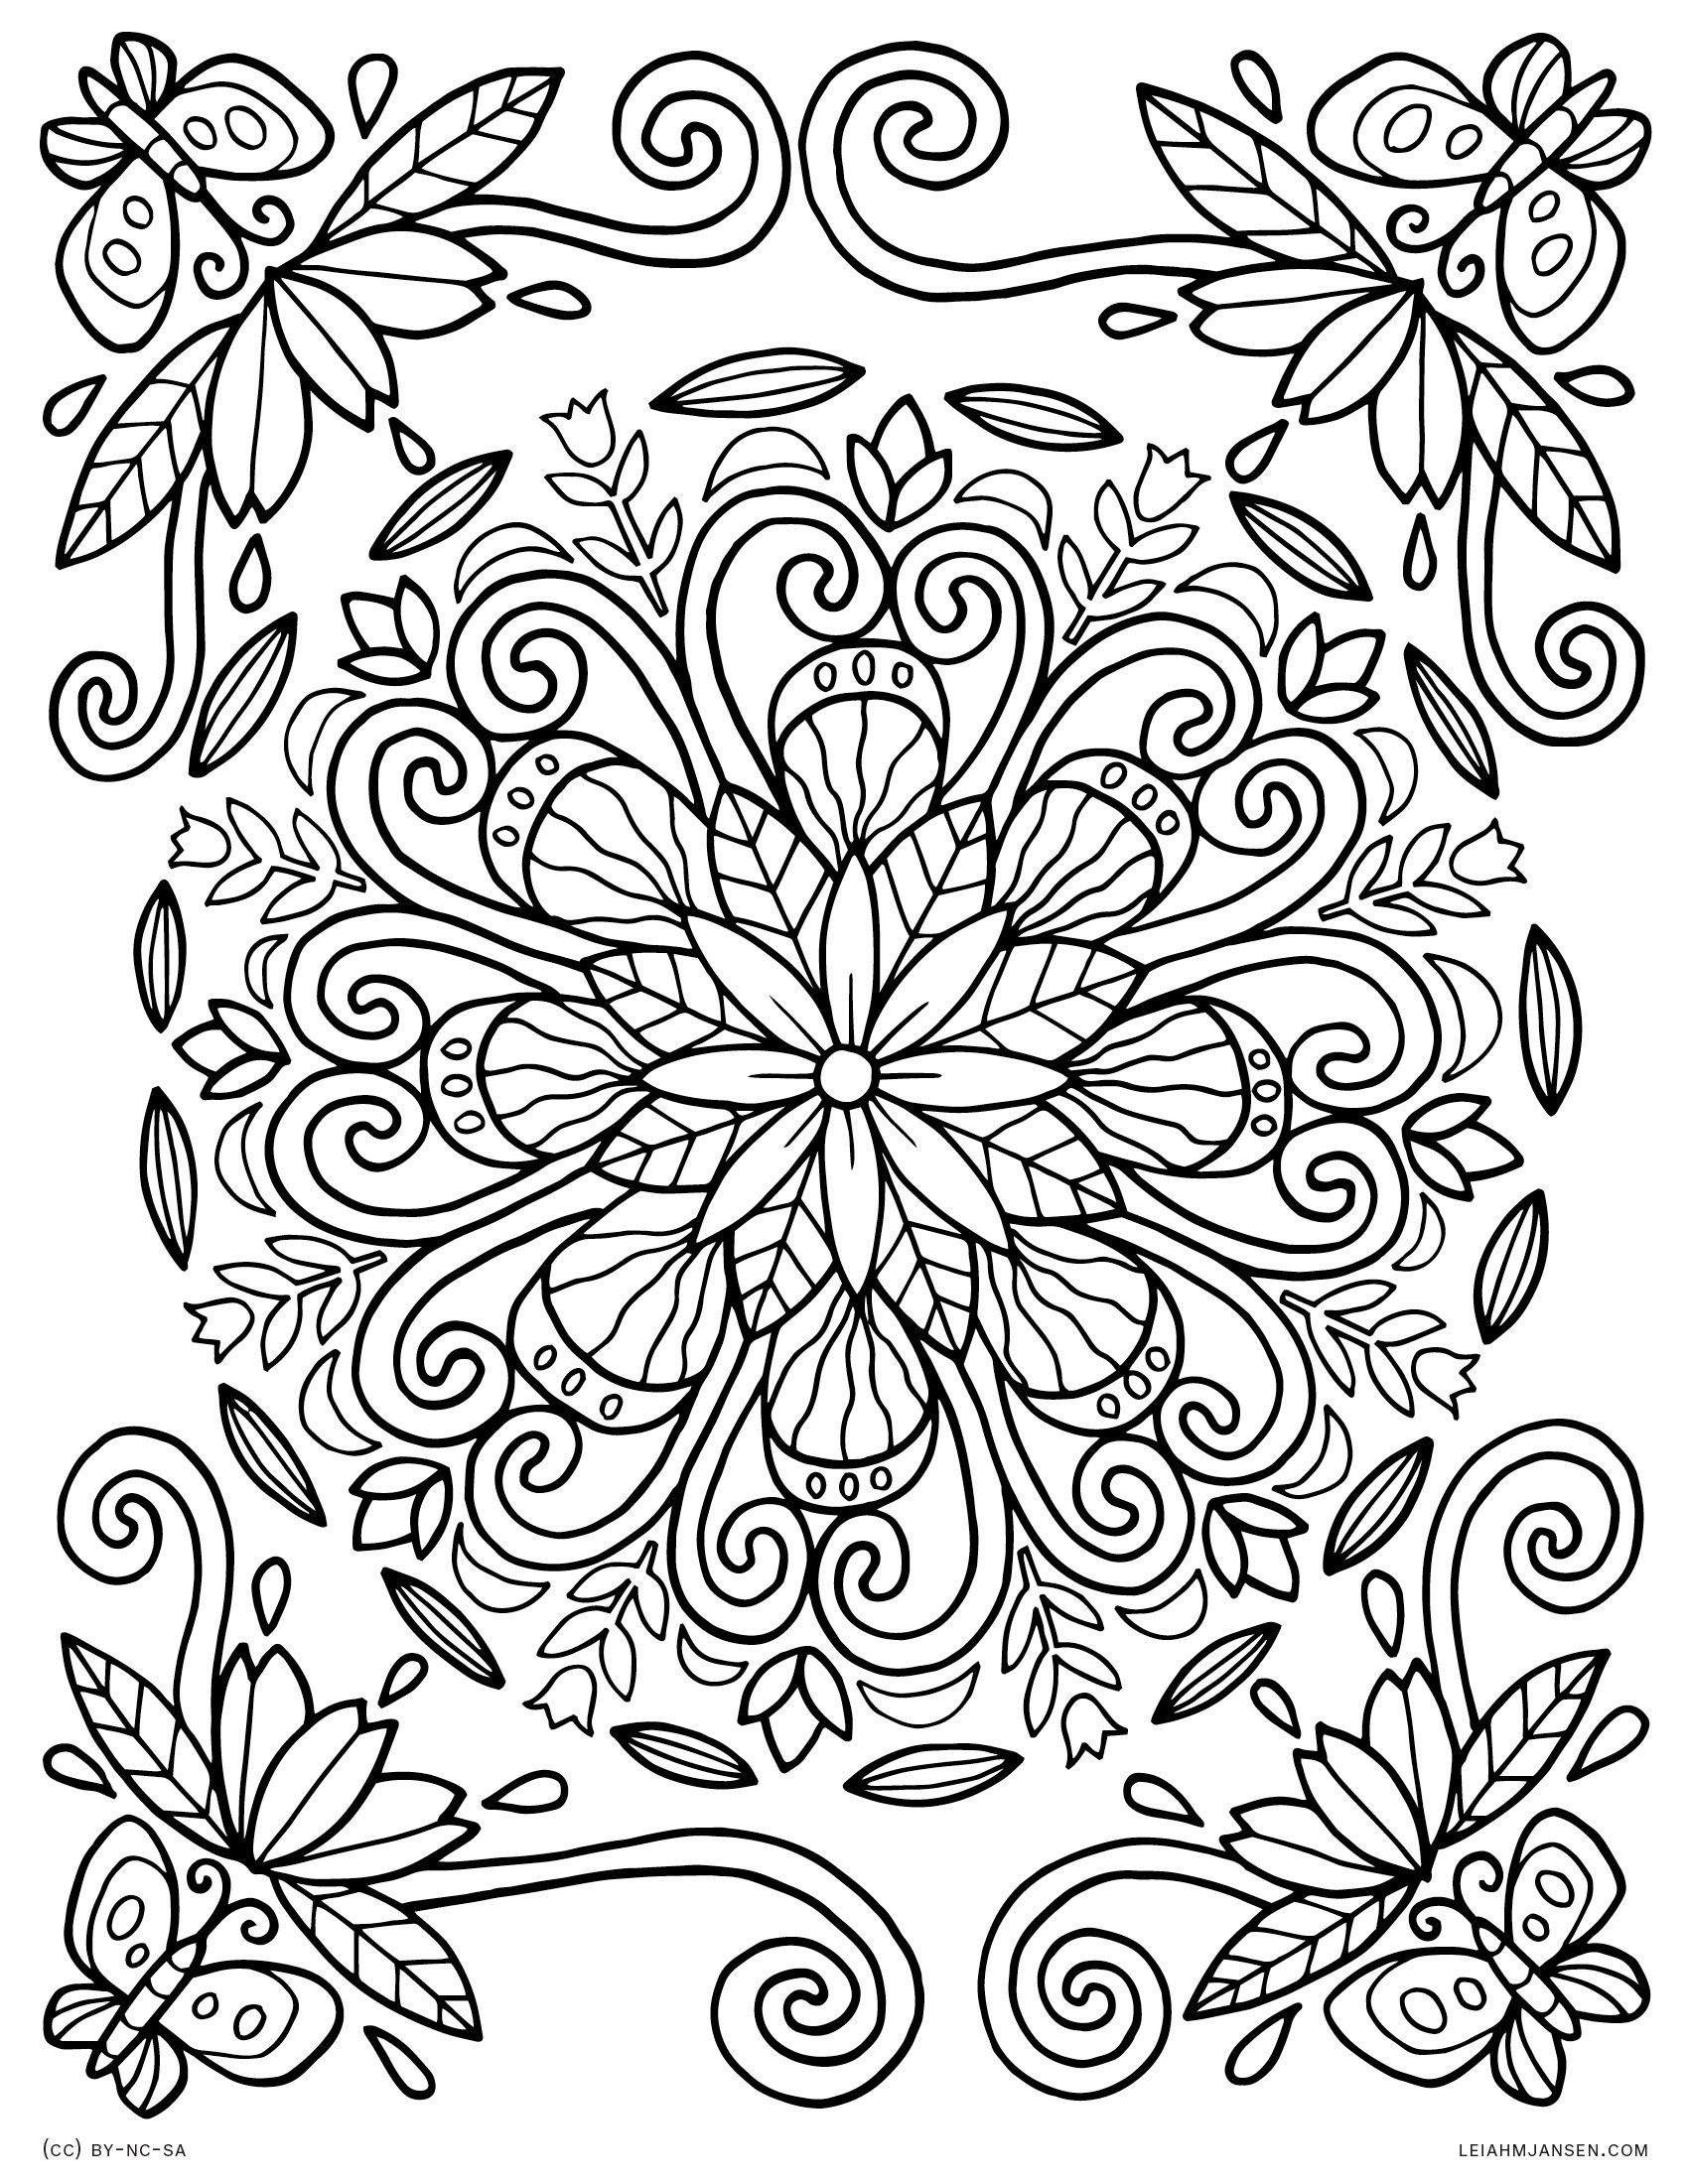 Free Printable Coloring Sheets Spring For Adults  Mandala Coloring Pages Nature to Print